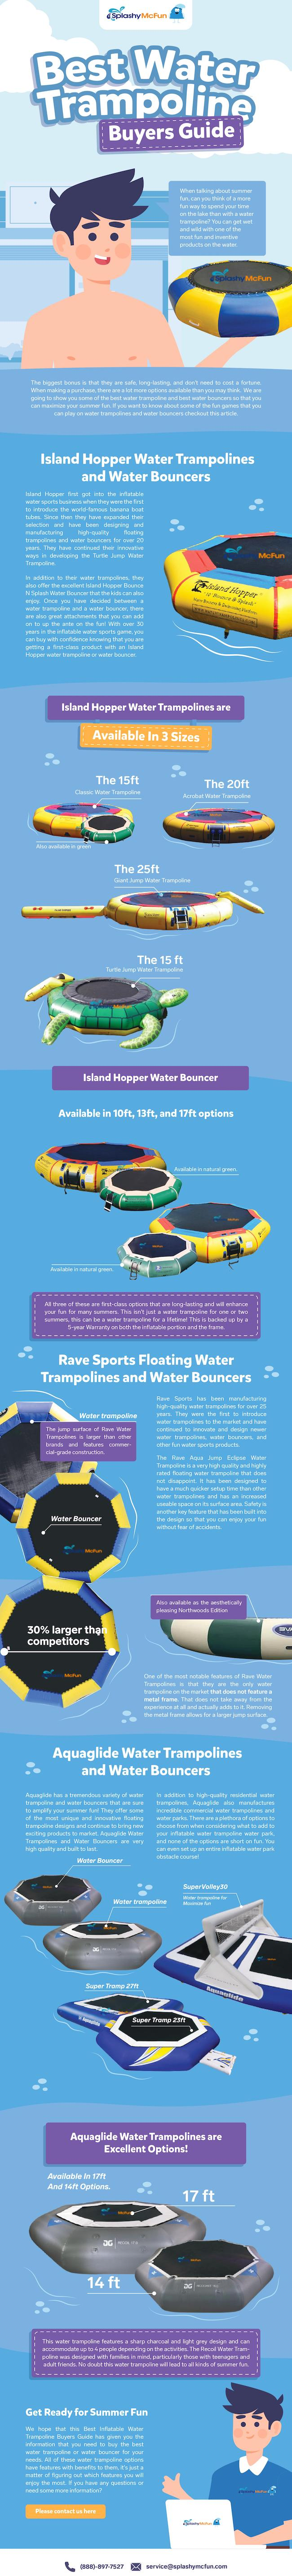 Best Water Trampolines for Sale Buyer's Guide